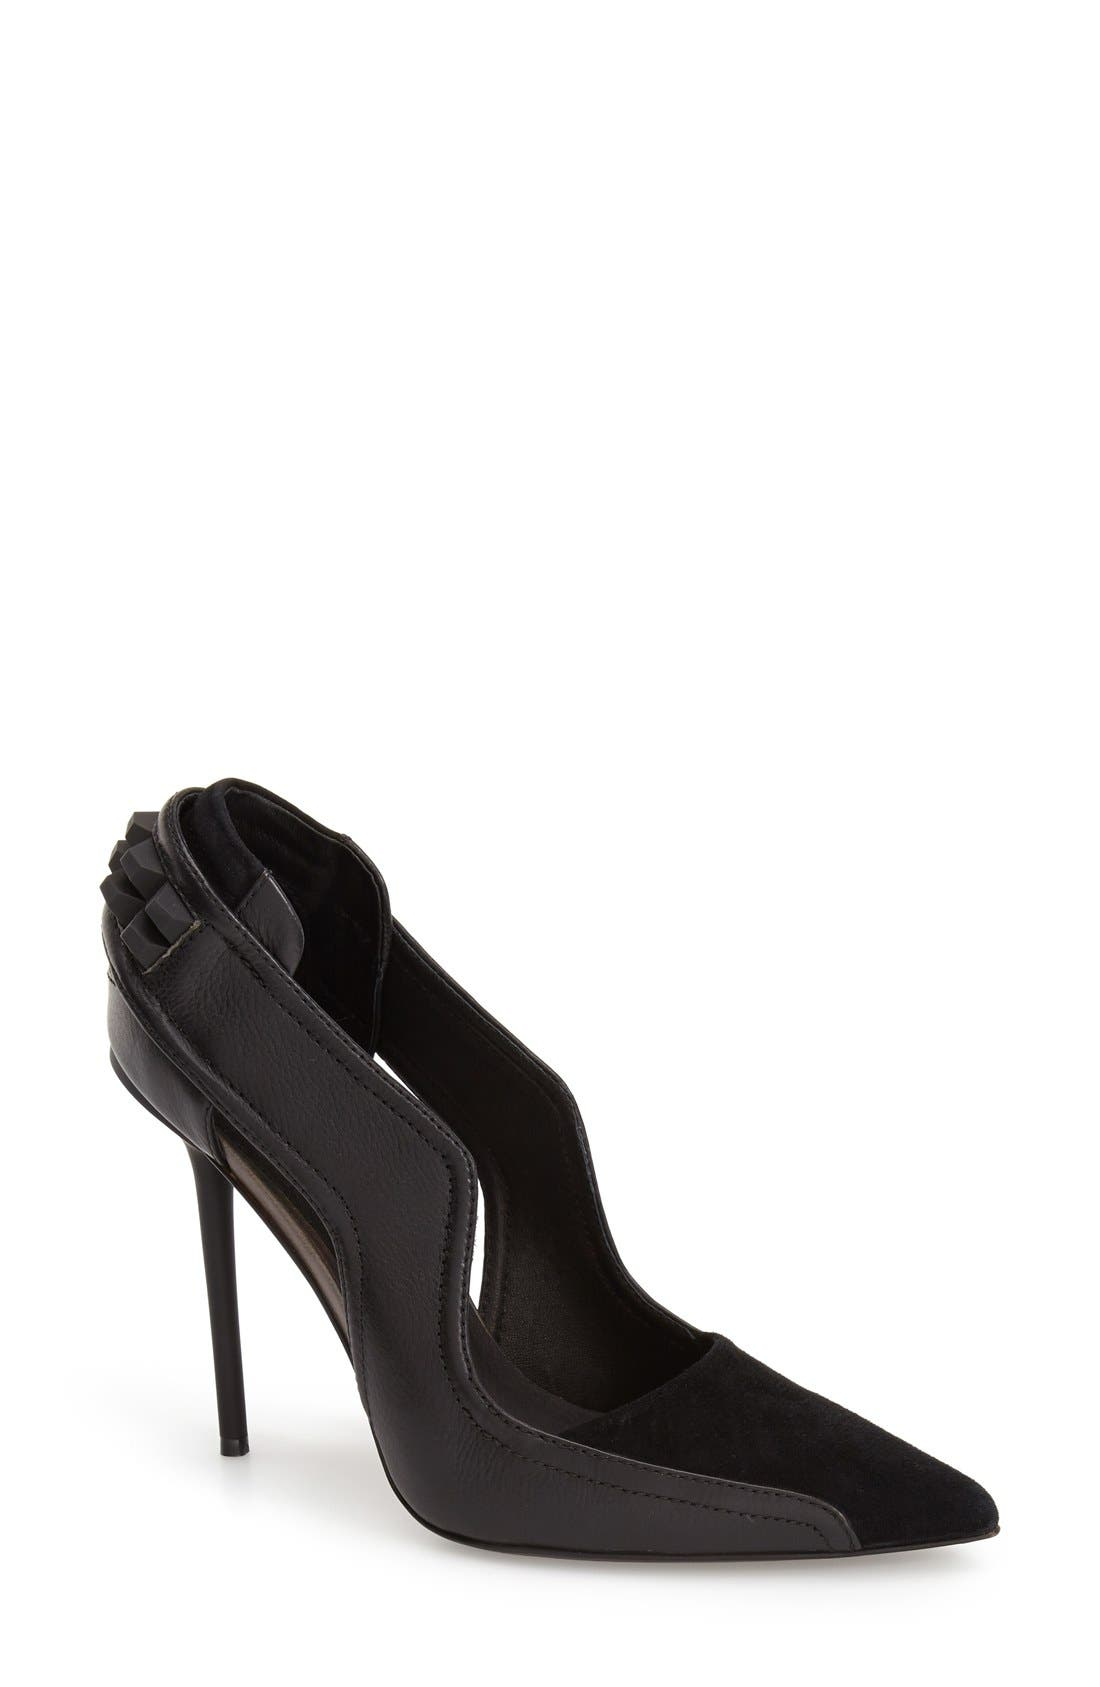 'Enforce' Leather & Suede Pointy Toe Pump, Main, color, 002